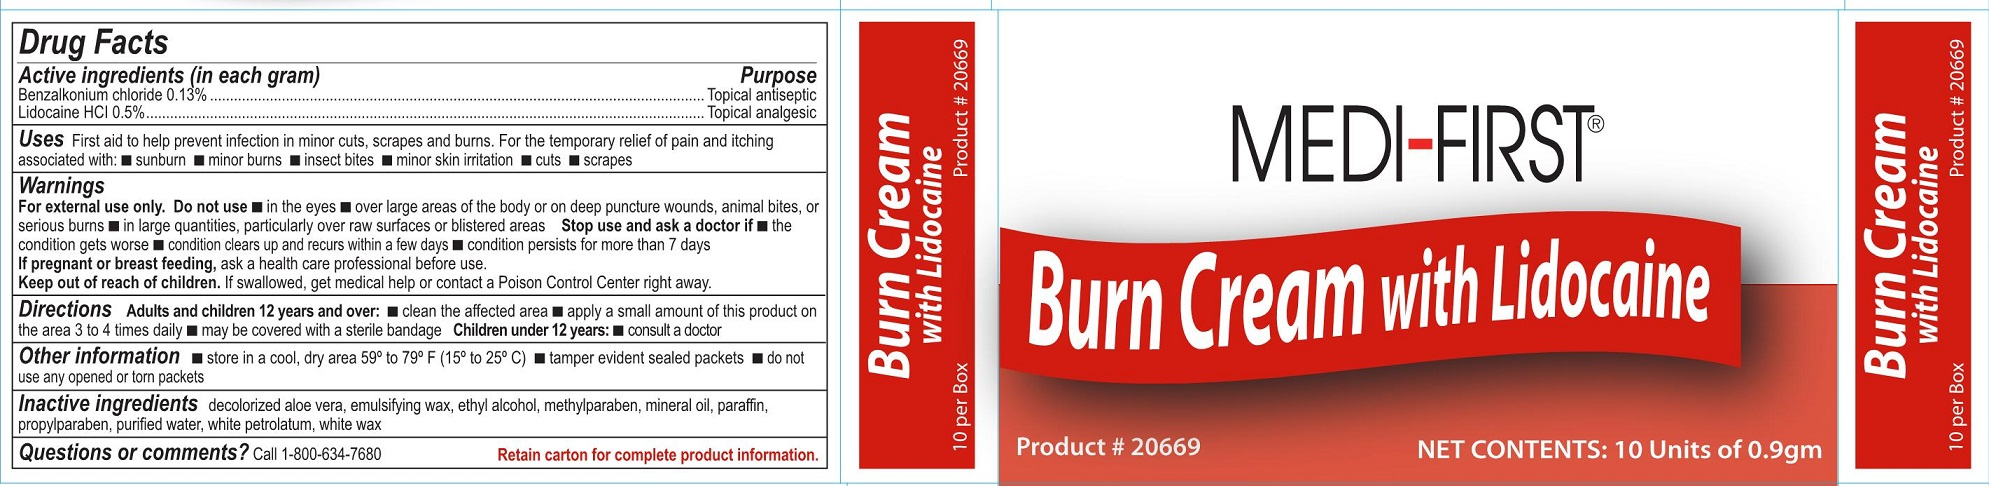 MF Burn Cream Safetec USA 2